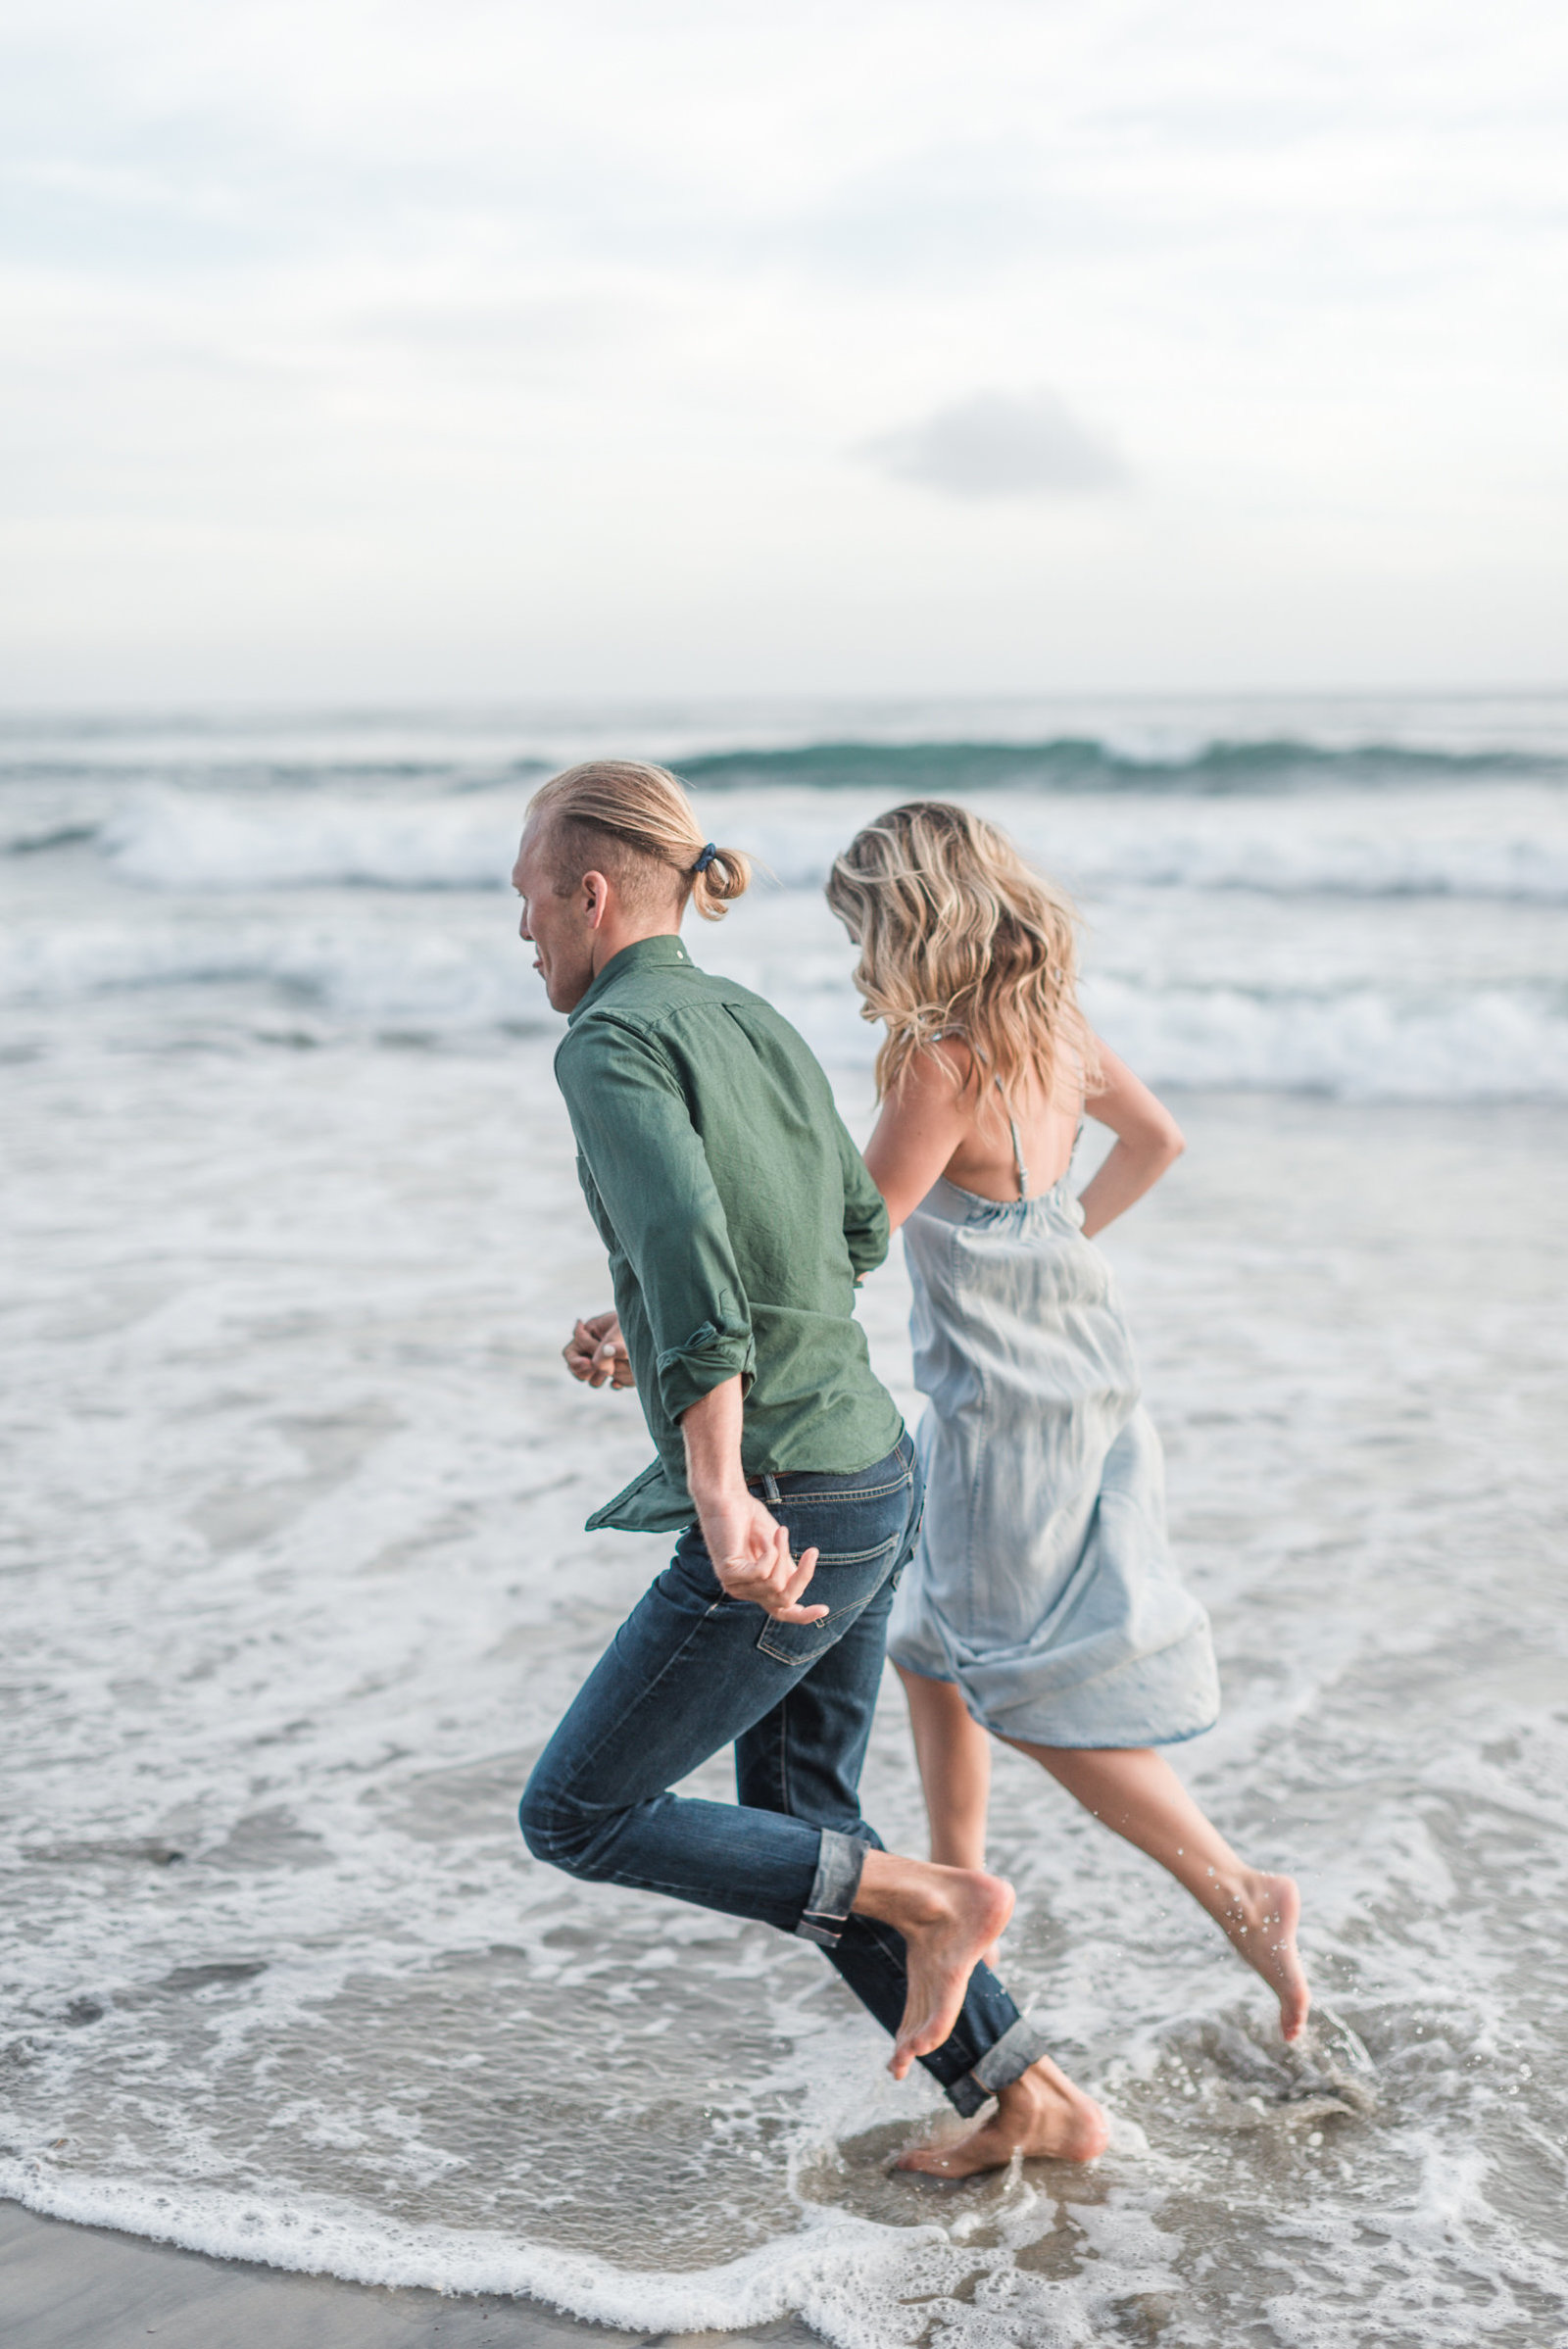 20180221-Pura-Soul-Photo-Encinitas-Engagement-Shoot-26